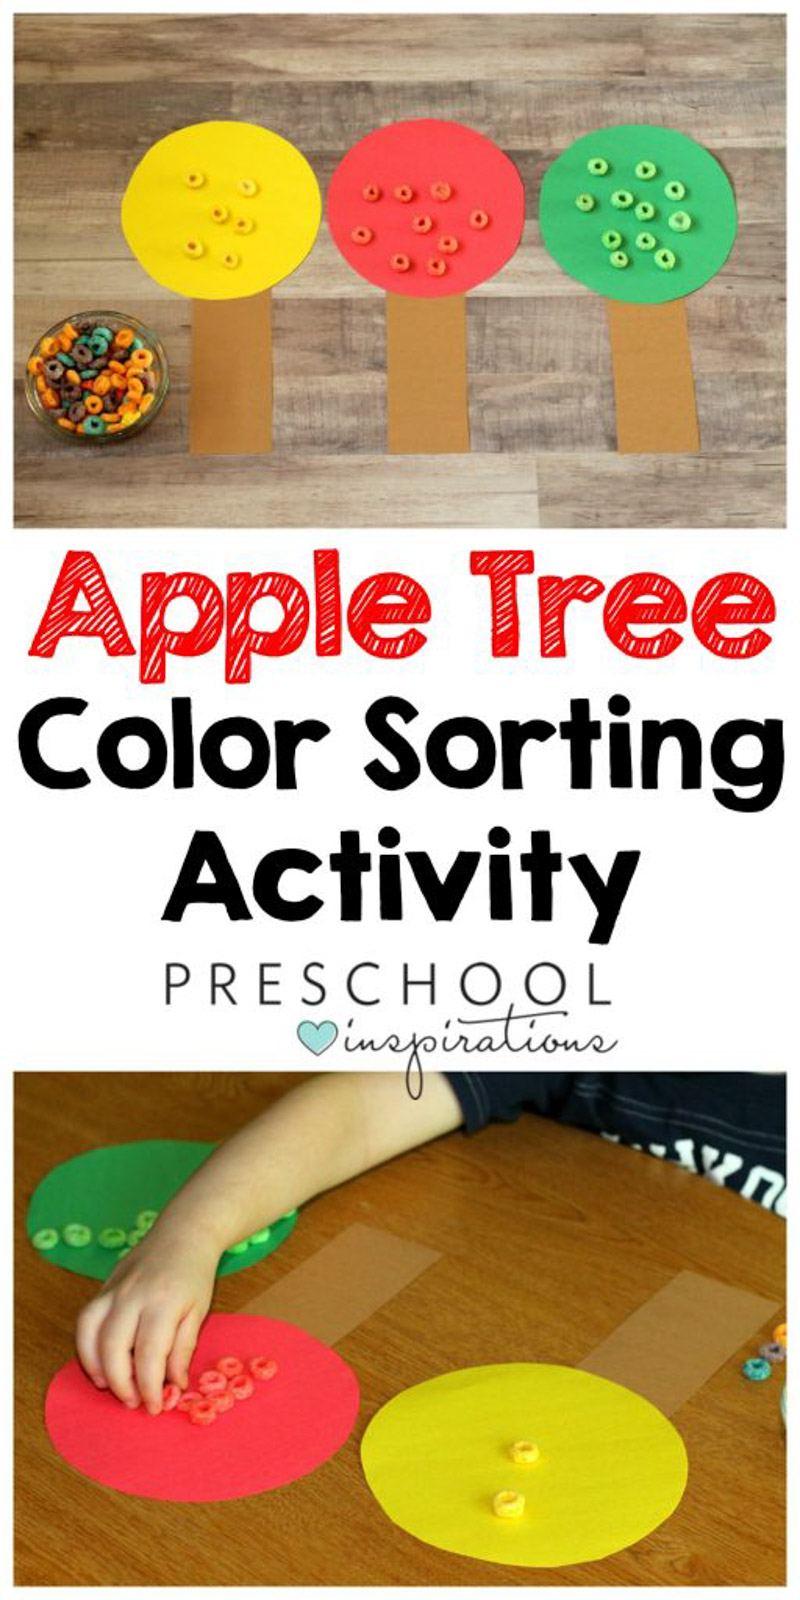 Color Sorting Preschool Apple Activity fine motor practice #preschool #preschoolactivities #preschoolinspirations #finemotor #colors #toddlers  #toddleractivities #preschoolinspirations